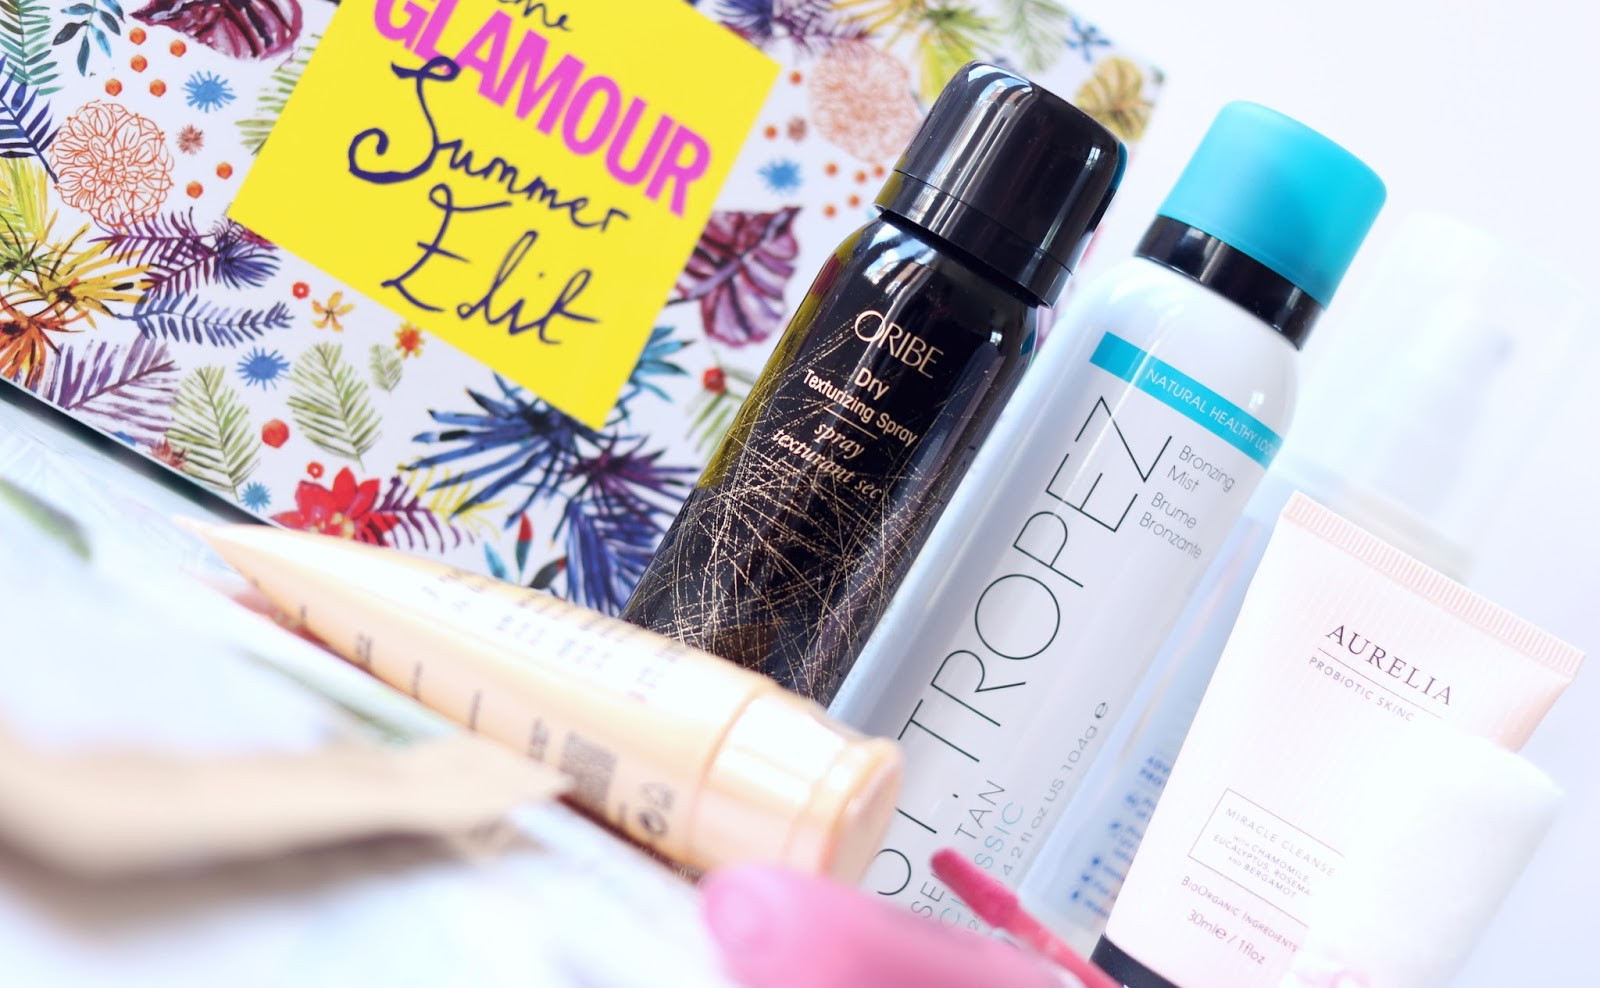 Latest in Beauty's GLAMOUR Summer Edit Beauty Box